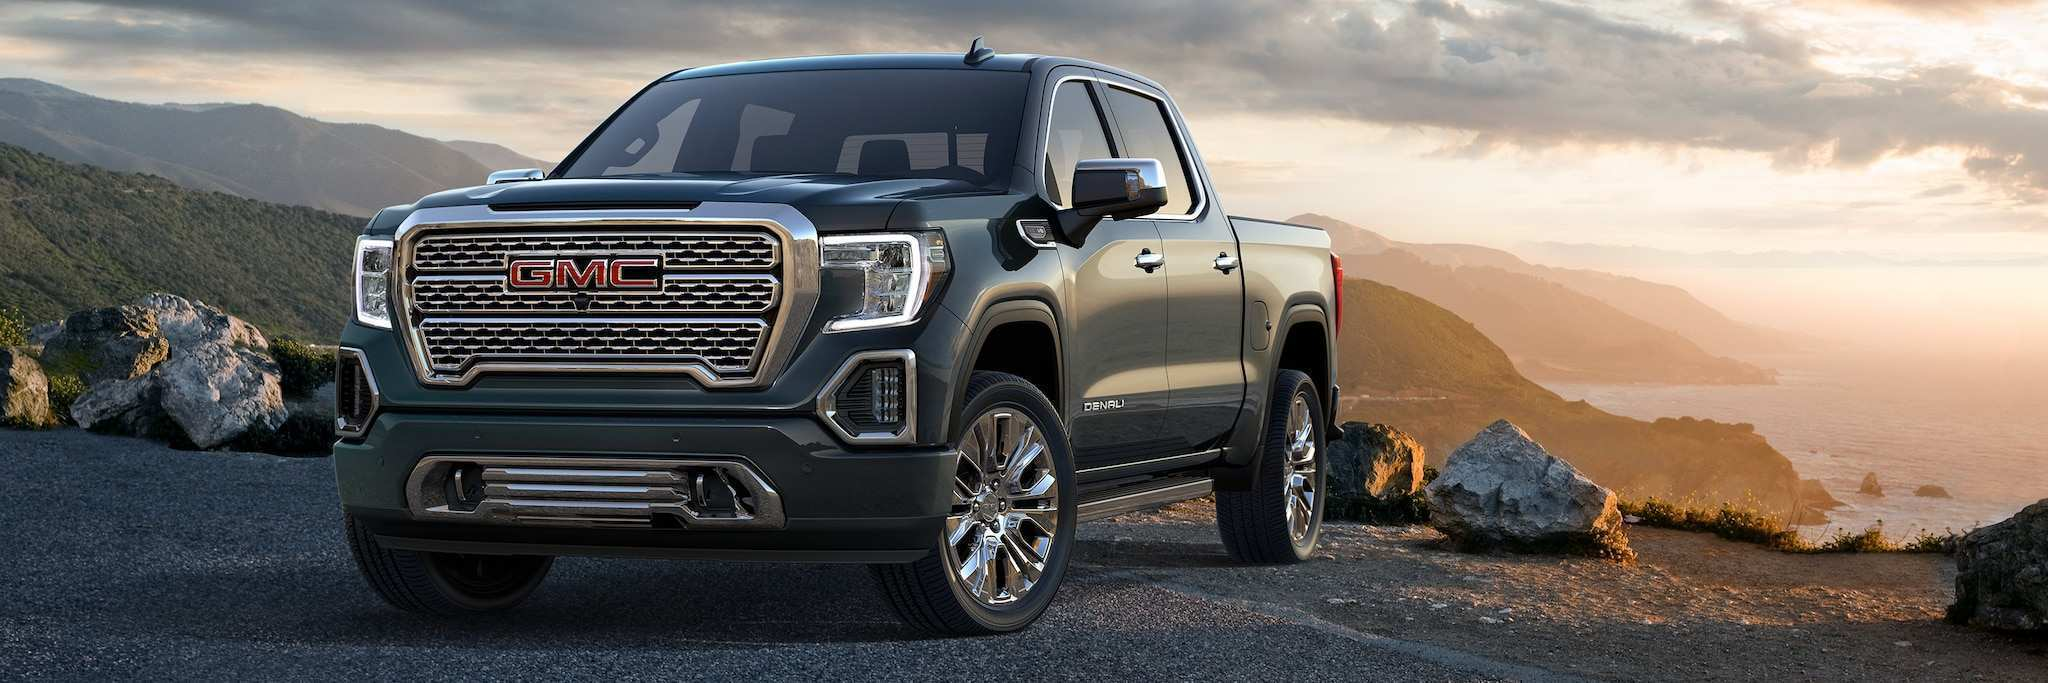 88 All New 2019 Gmc Pickup Release Date First Drive